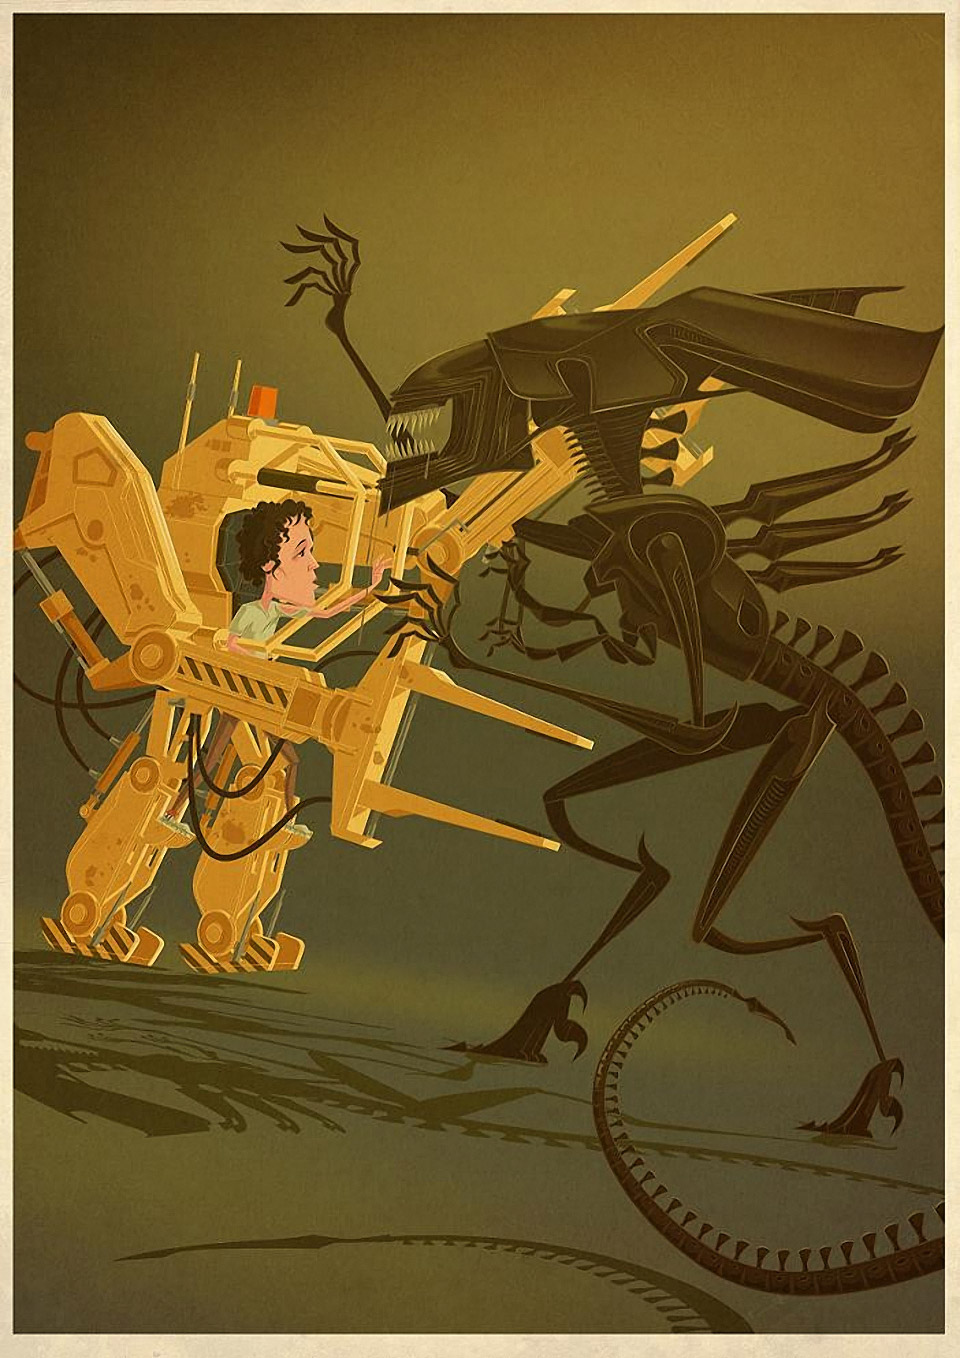 Ellen Ripley Powerloader Battle Prints